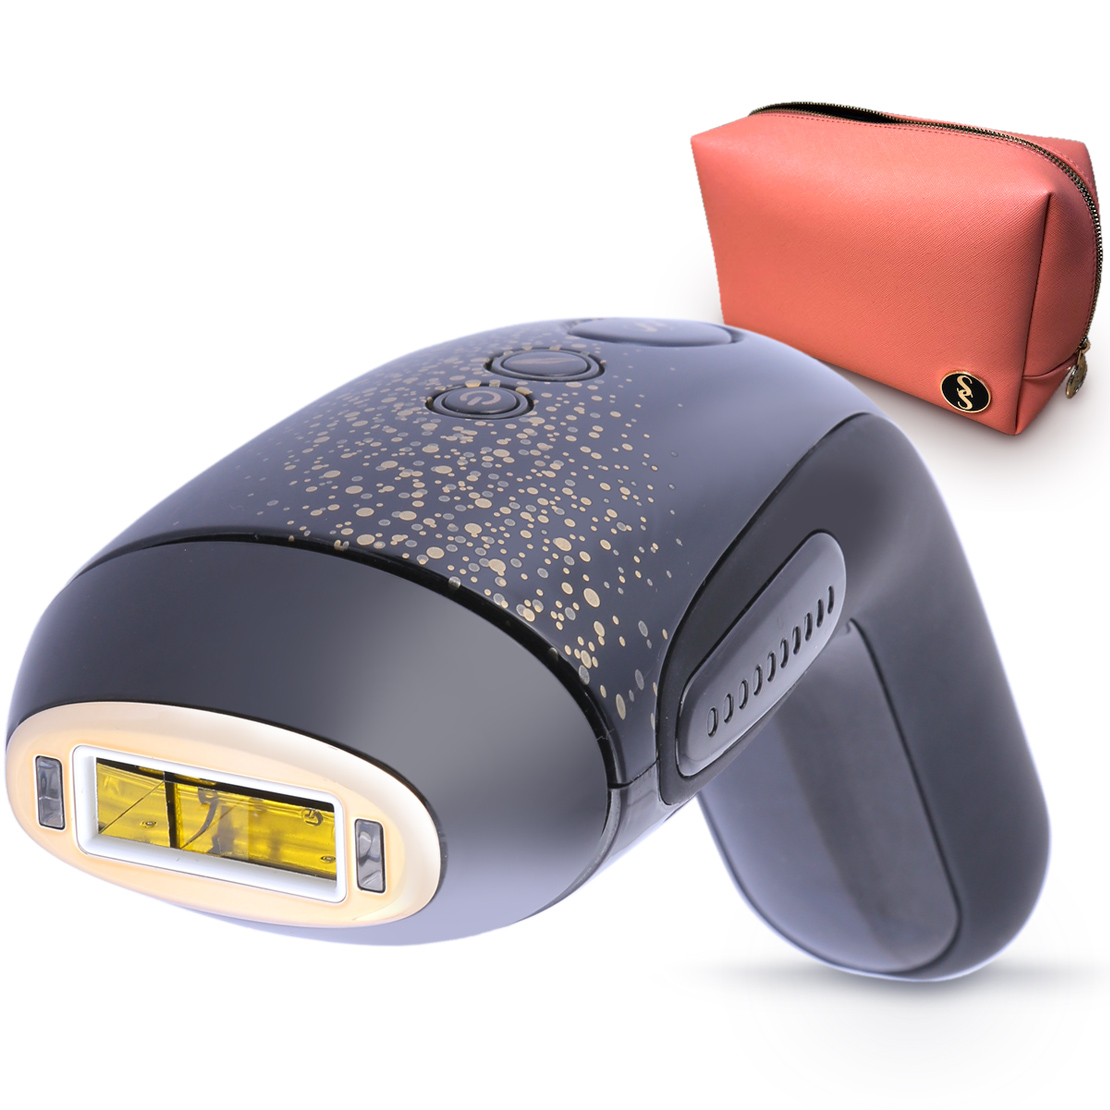 Muse Intelligent IPL with Unlimited Flashes & Cosmetic Bag